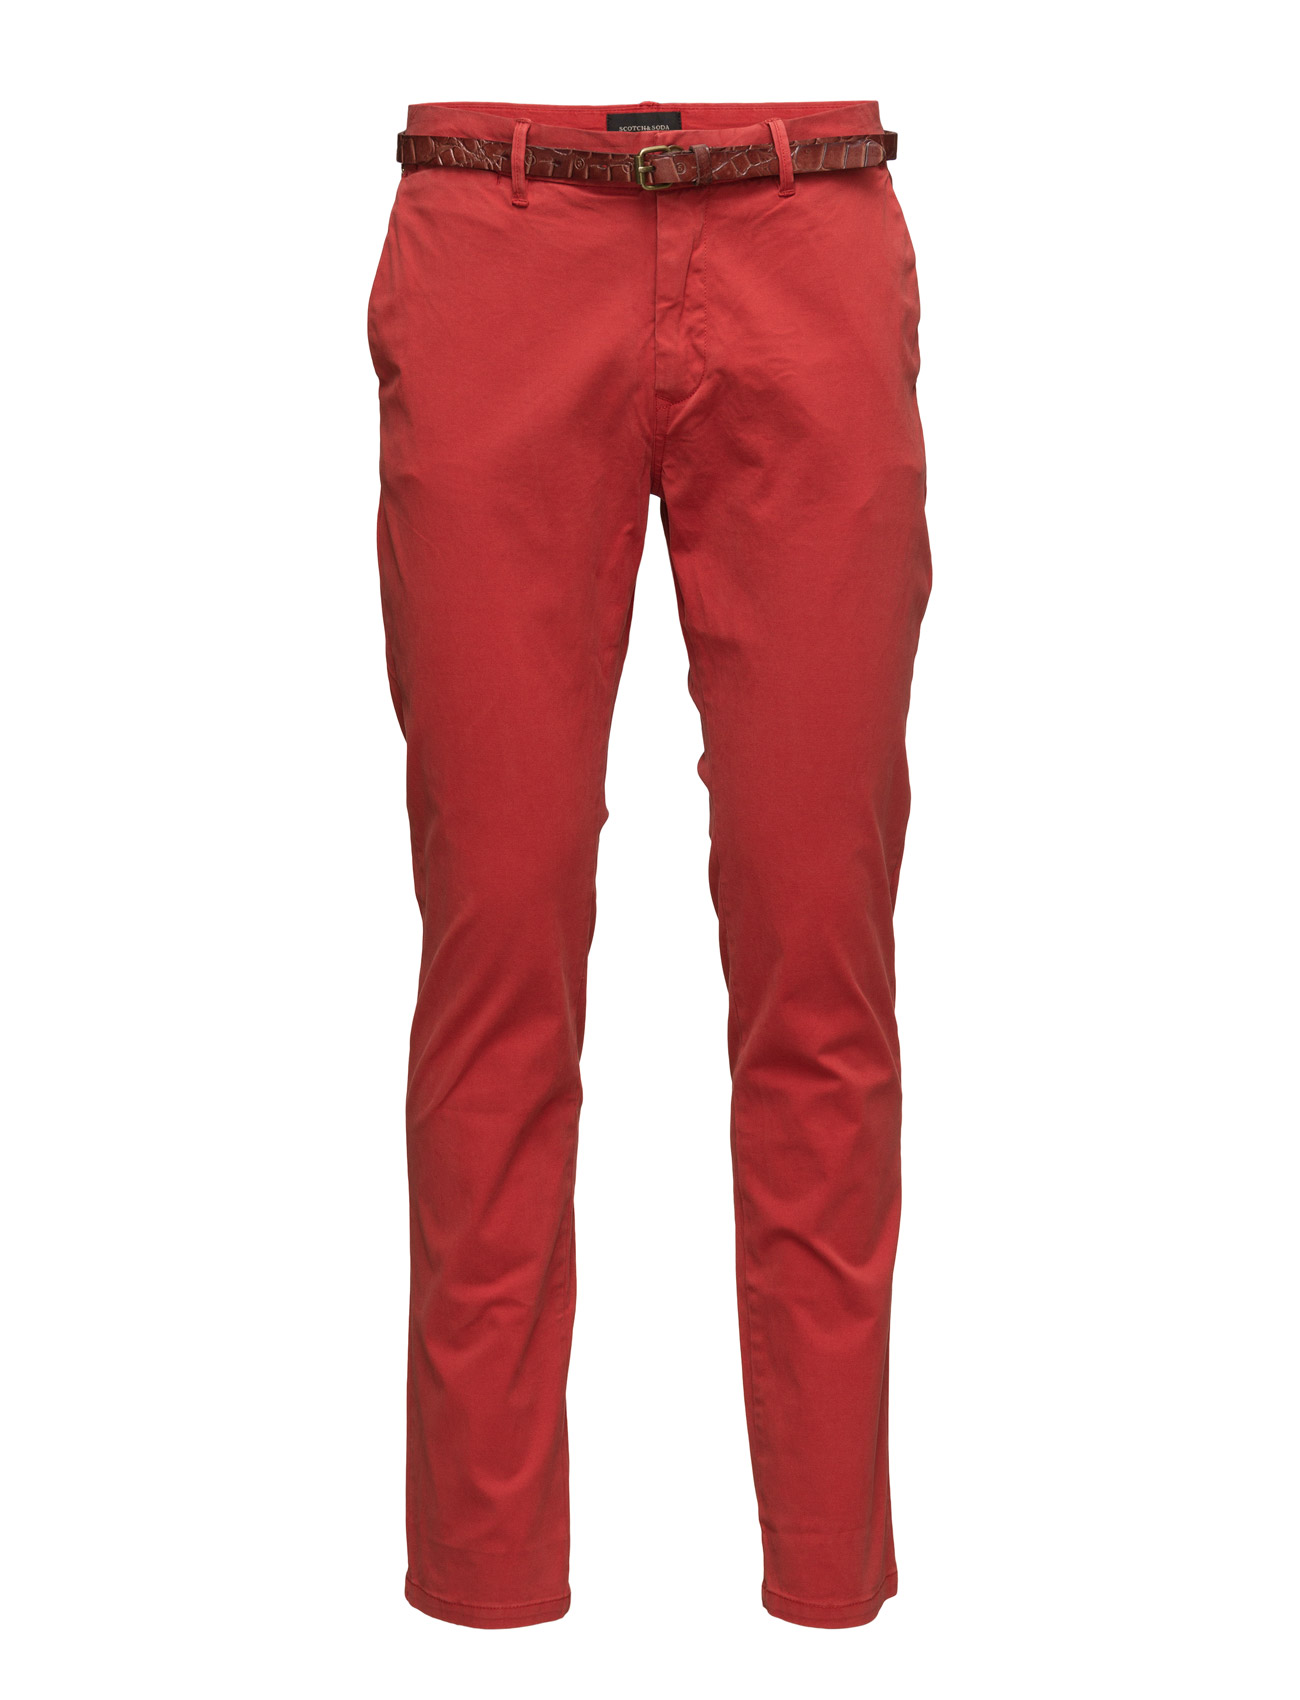 Garment Dyed Chino In Stretch Cotton Quality Scotch & Soda Chinos